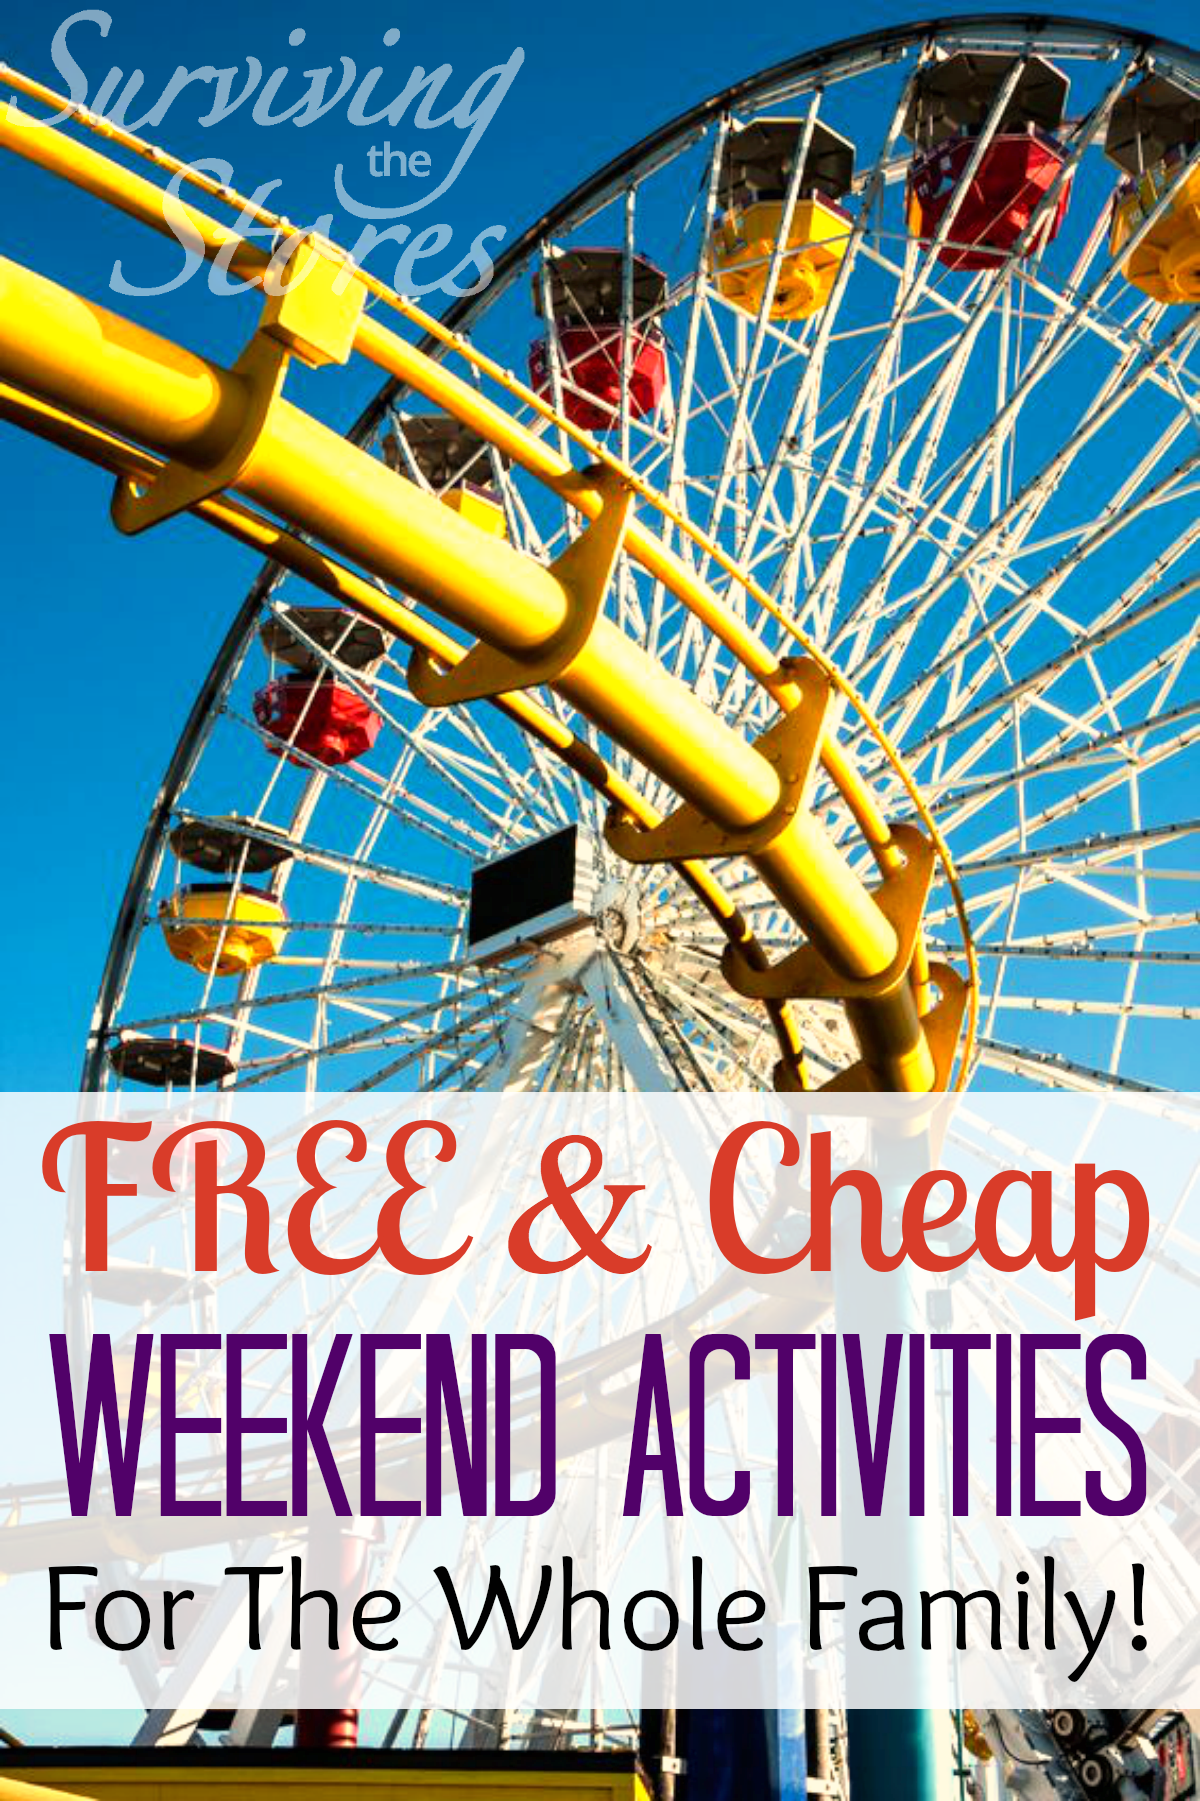 Free Weekend Activities For The Whole Family